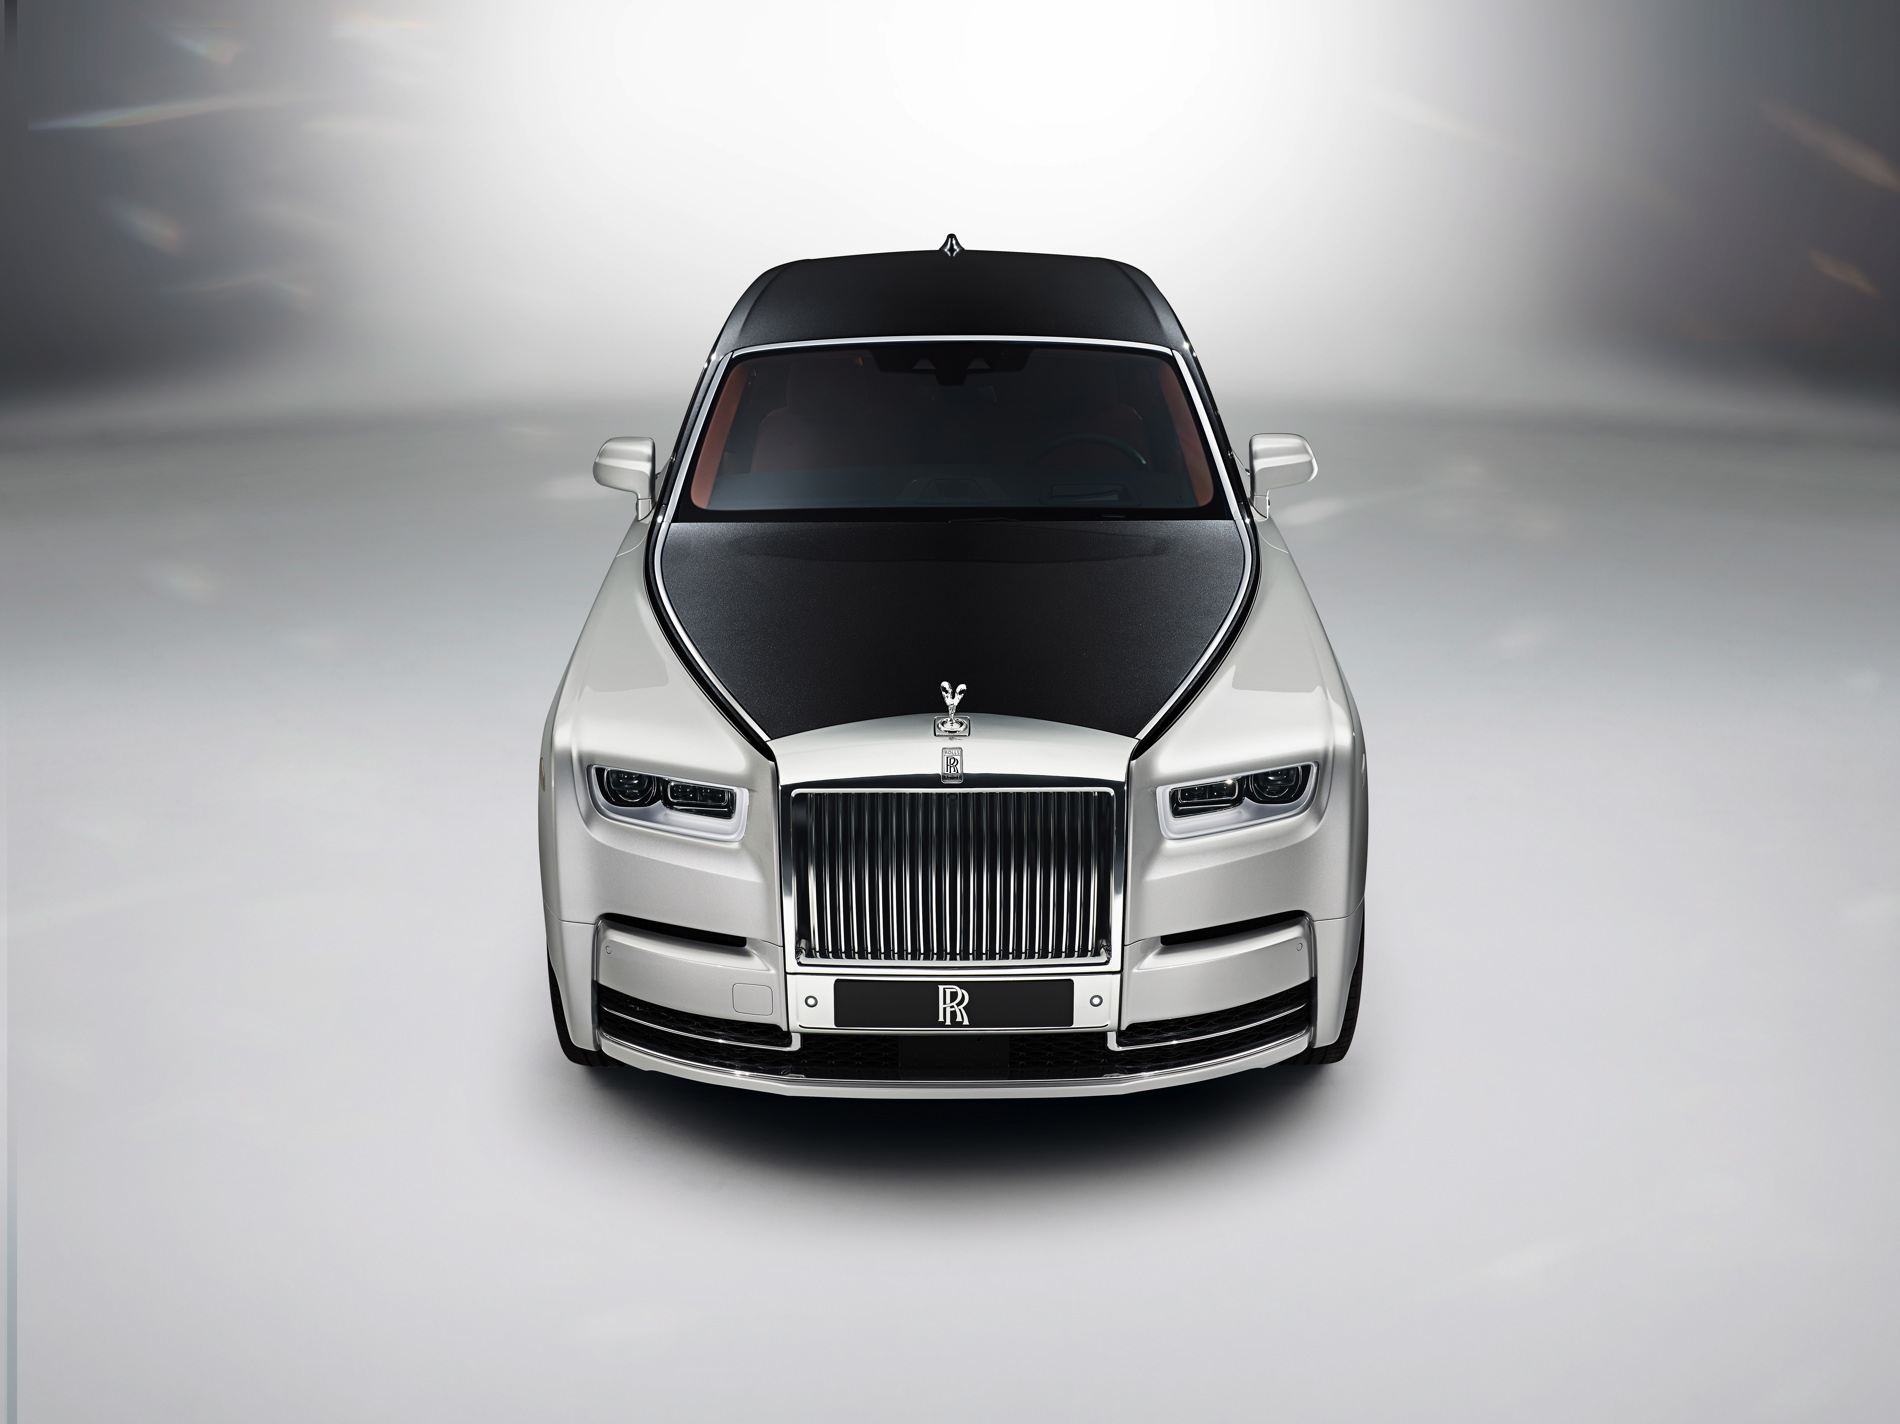 New Rolls Royce Phantom 18